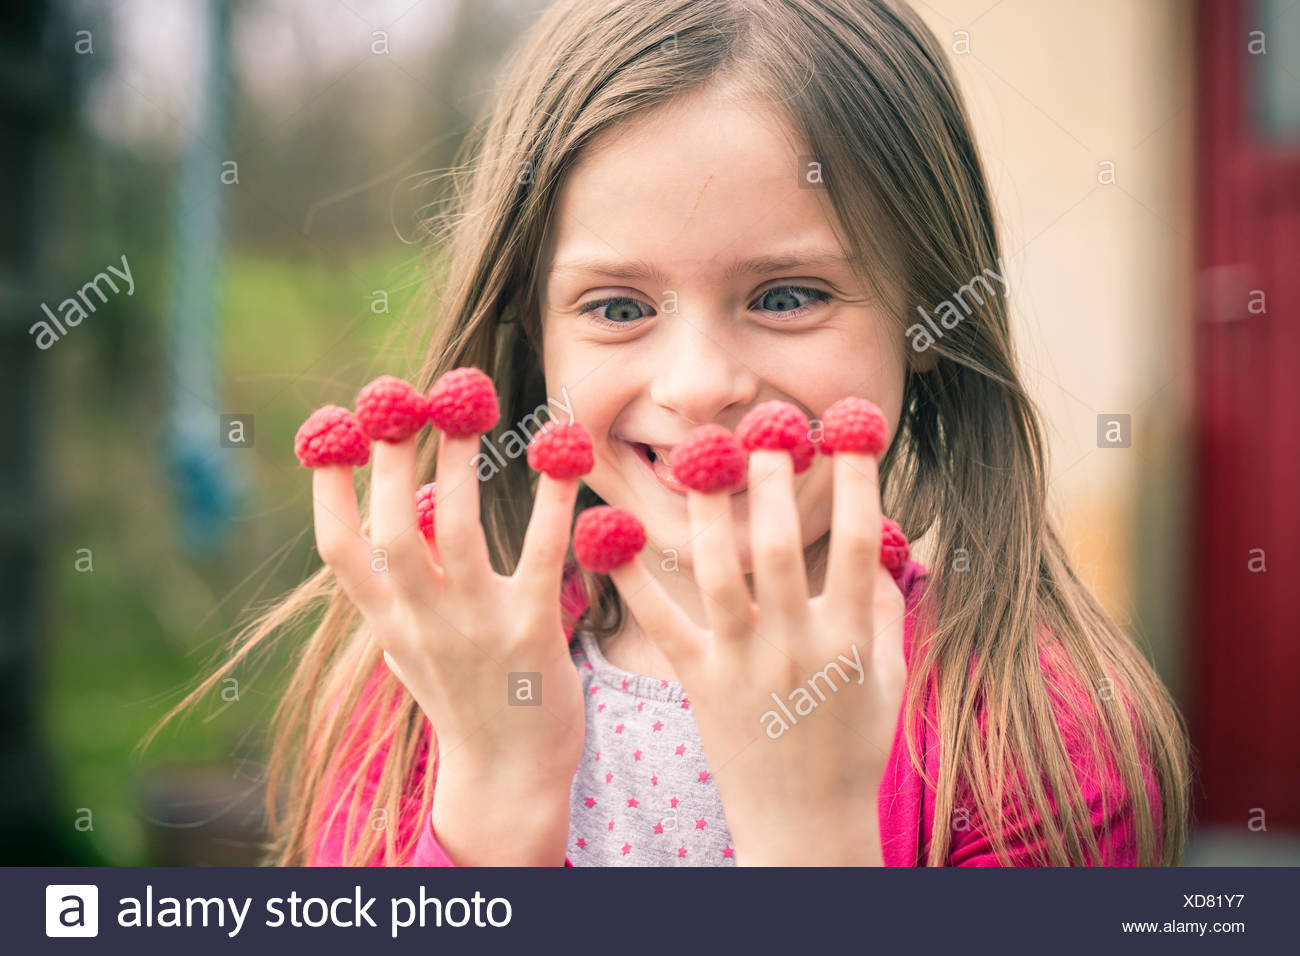 Happy girl with raspberries on her fingers Stock Photo